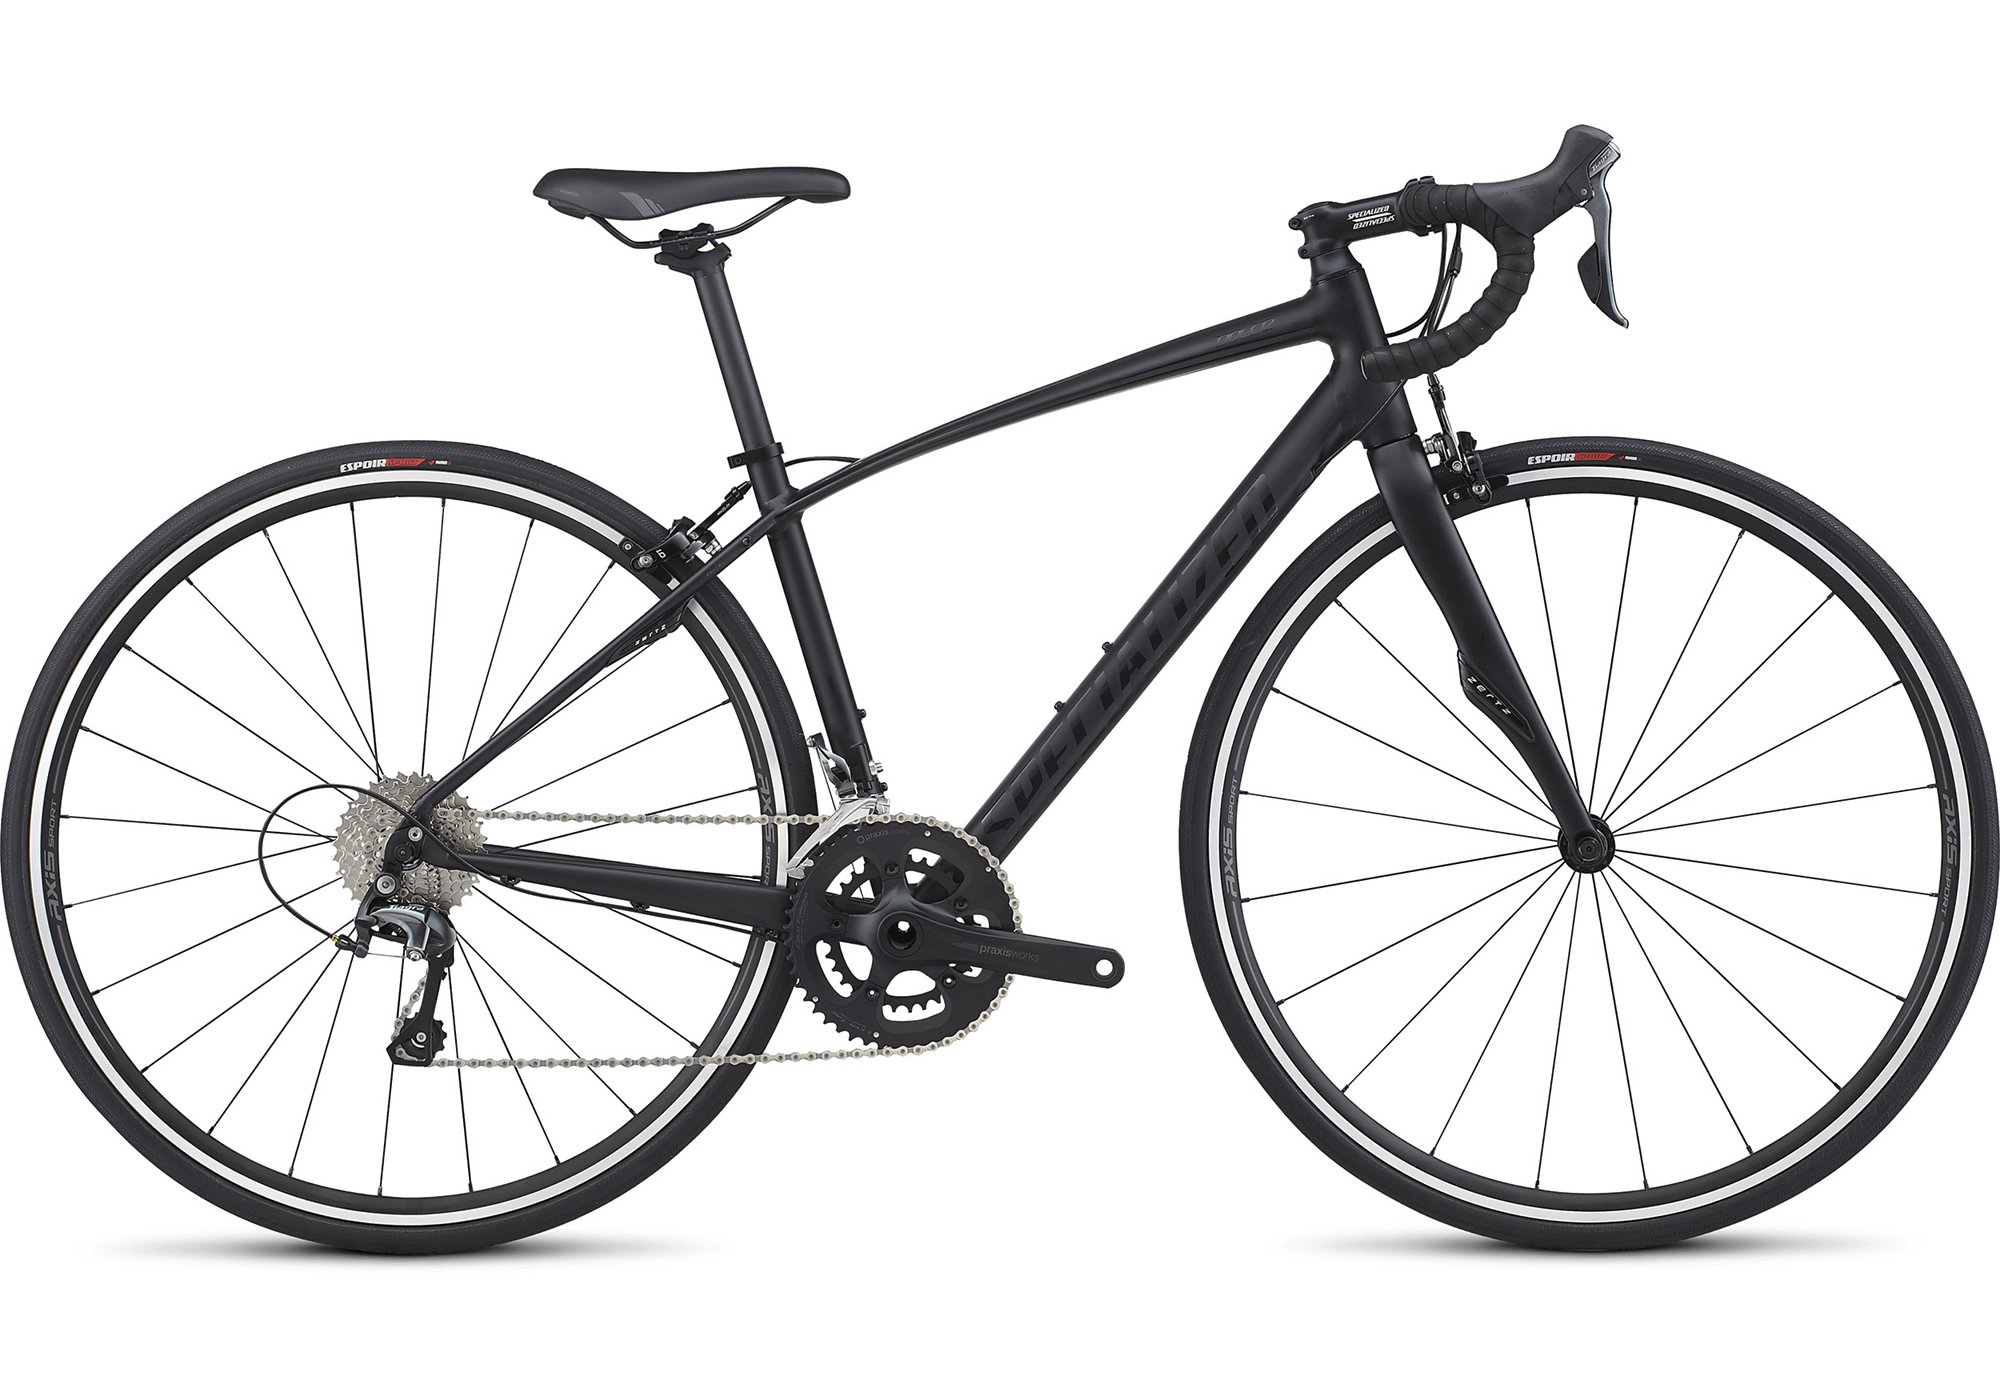 2017 Specialized Dolce Elite E5 Black £850.00